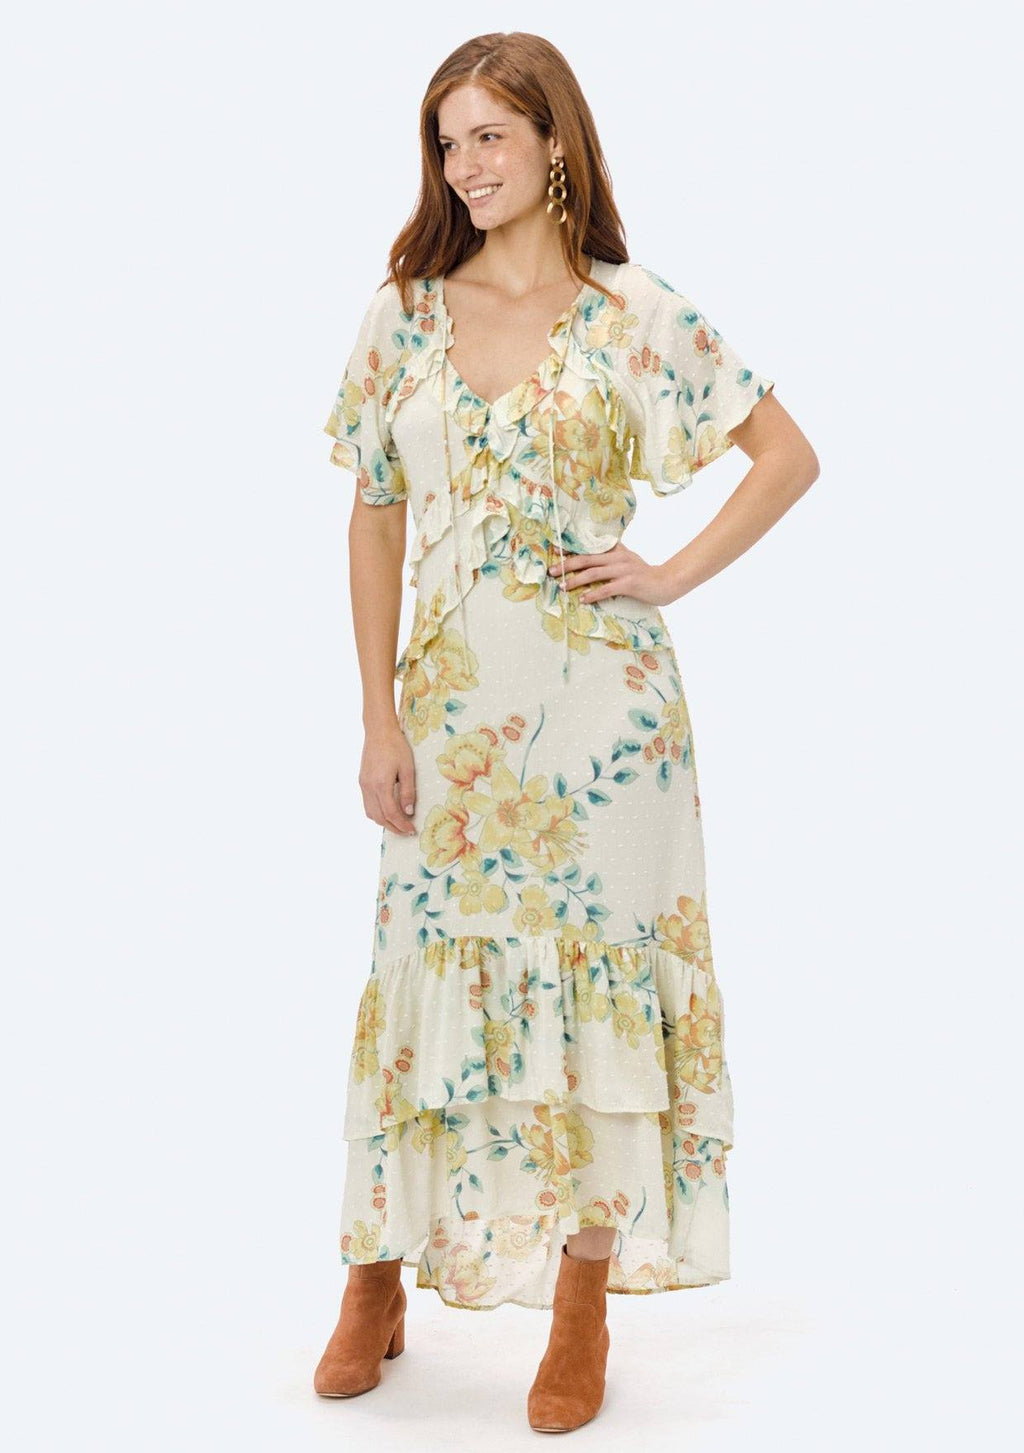 LOVESTITCH, DRESS, LOVESTITCH| Printed Flutter Sleeve Maxi Dress with Ruffle Detail - Edgar Martha's Vineyard